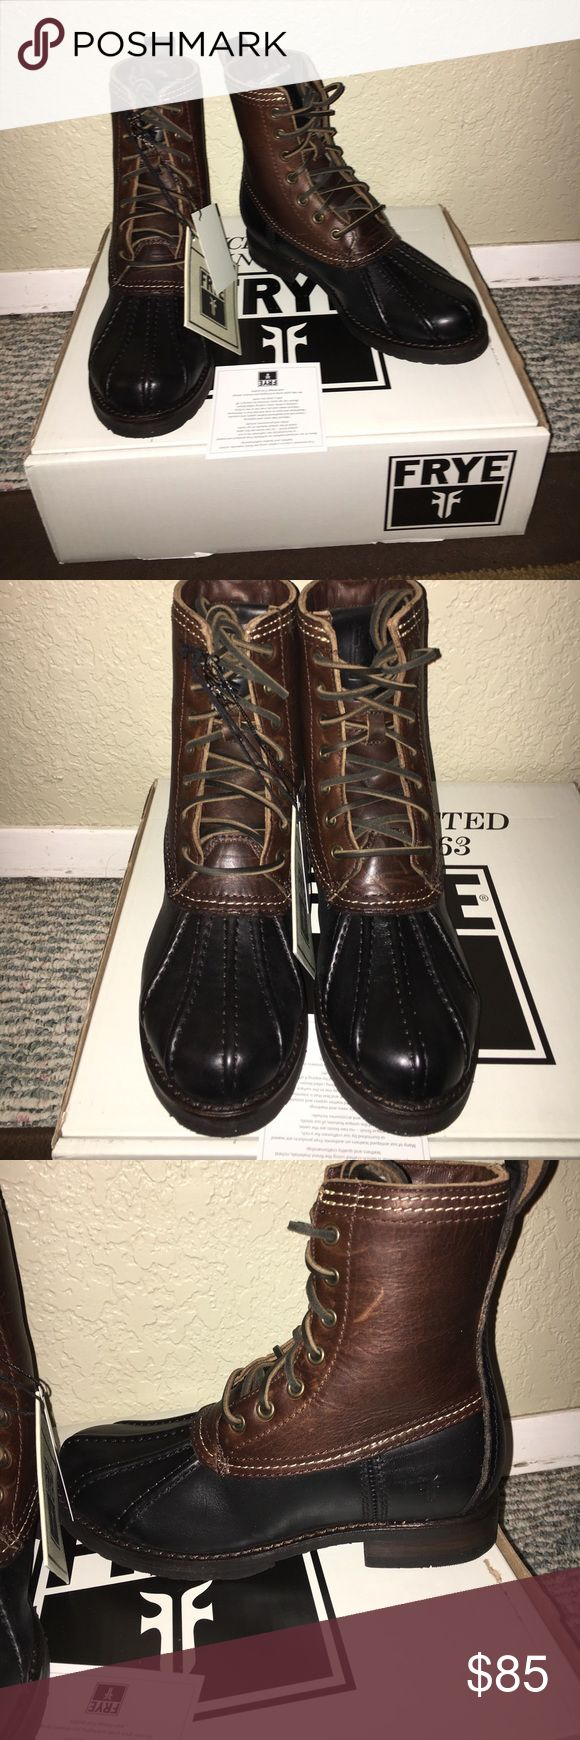 Frye Veronica boots NWT SIZE 6 1/2 Frye Veronica boots size 6 1/2 these are NWT BOOTS DO HAVE A FEW SCRATCHES AS SEEN IN PICTURES THATS THE WAY THEY CAME Frye Shoes